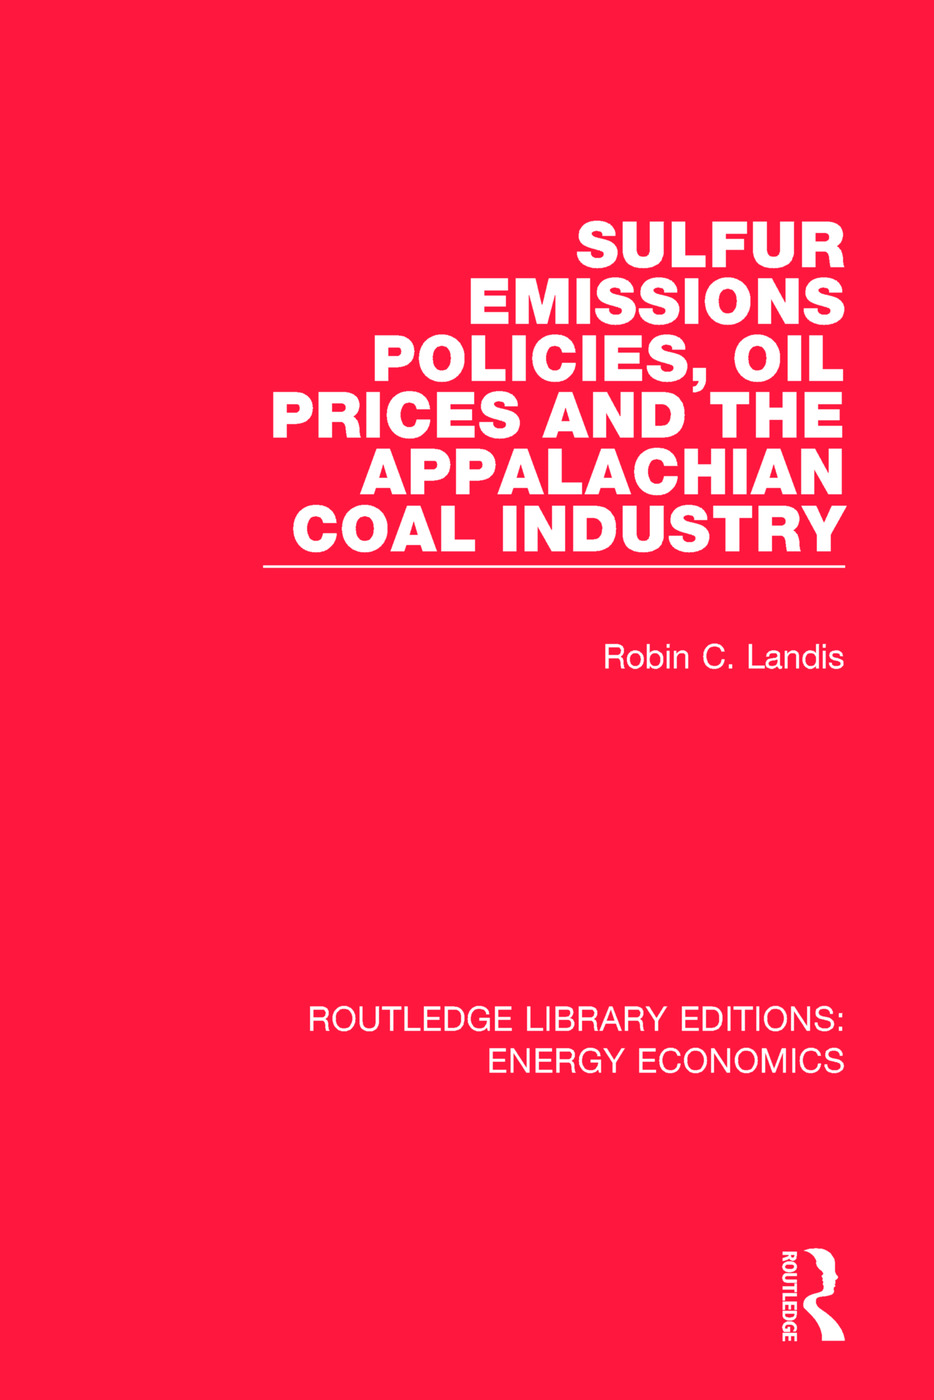 Sulfur Emissions Policies, Oil Prices and the Appalachian Coal Industry book cover